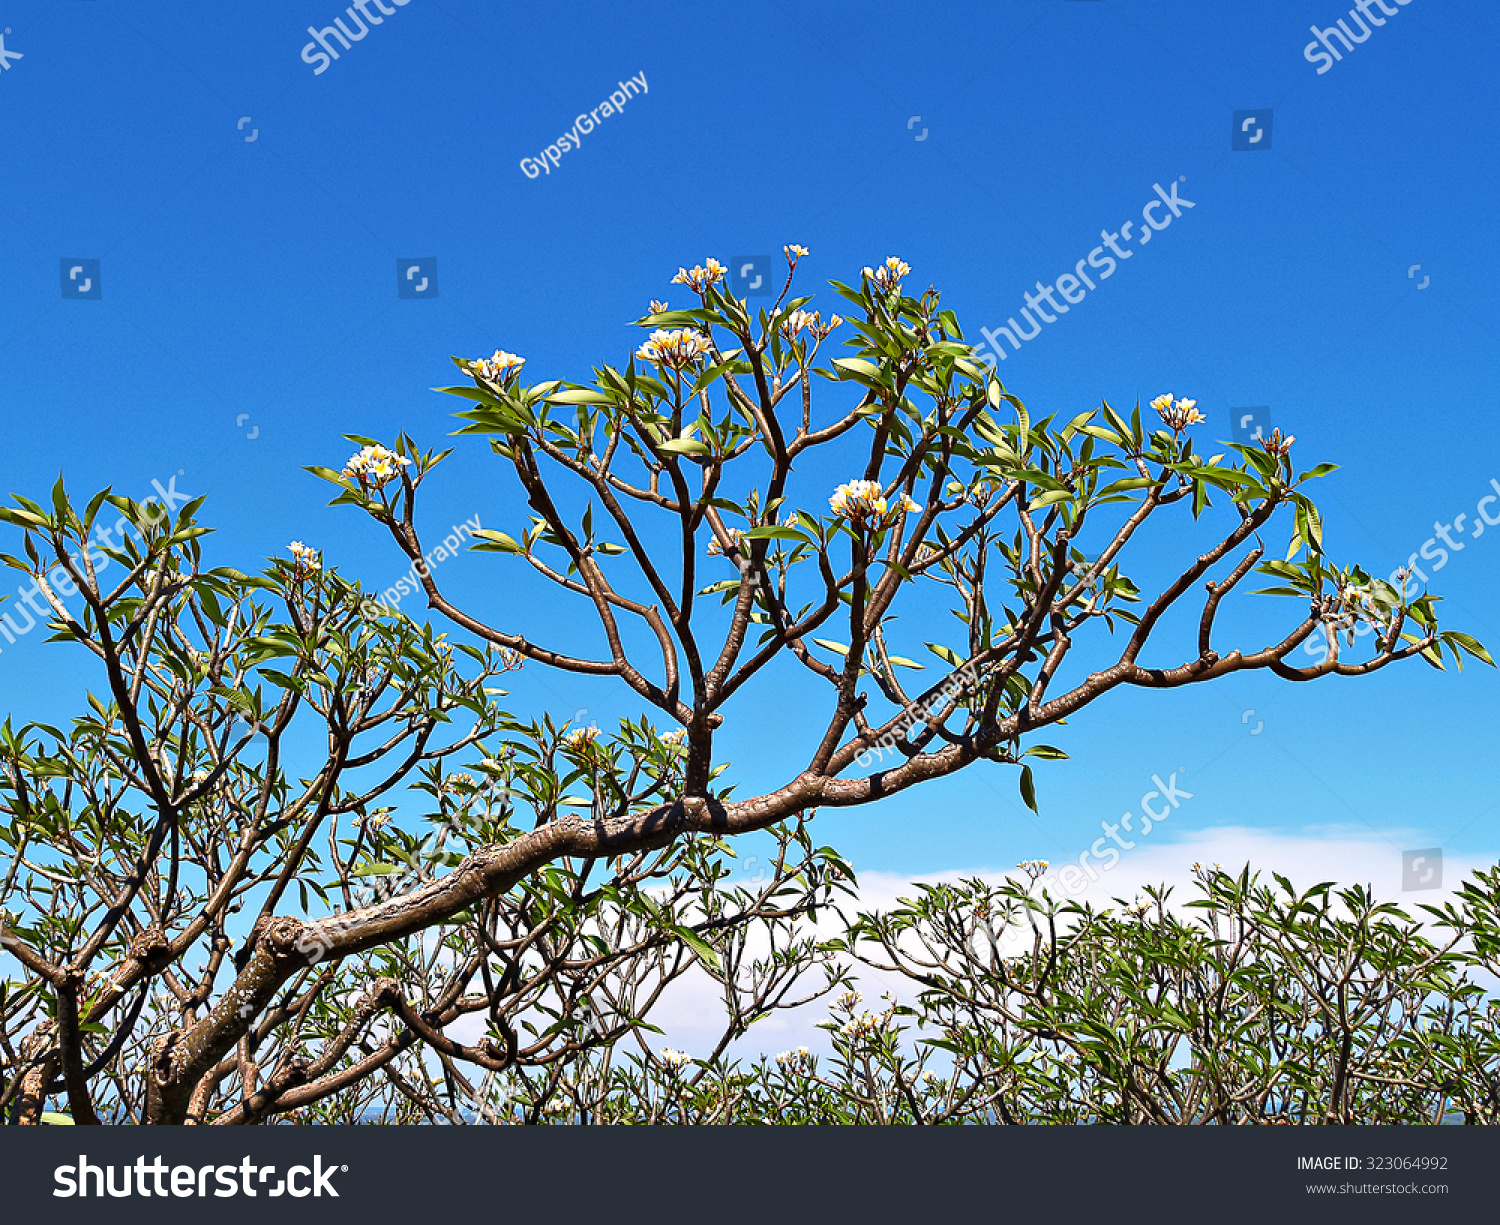 Frangipani flowers on a tree with blue sky plumeria temple tree id 323064992 izmirmasajfo